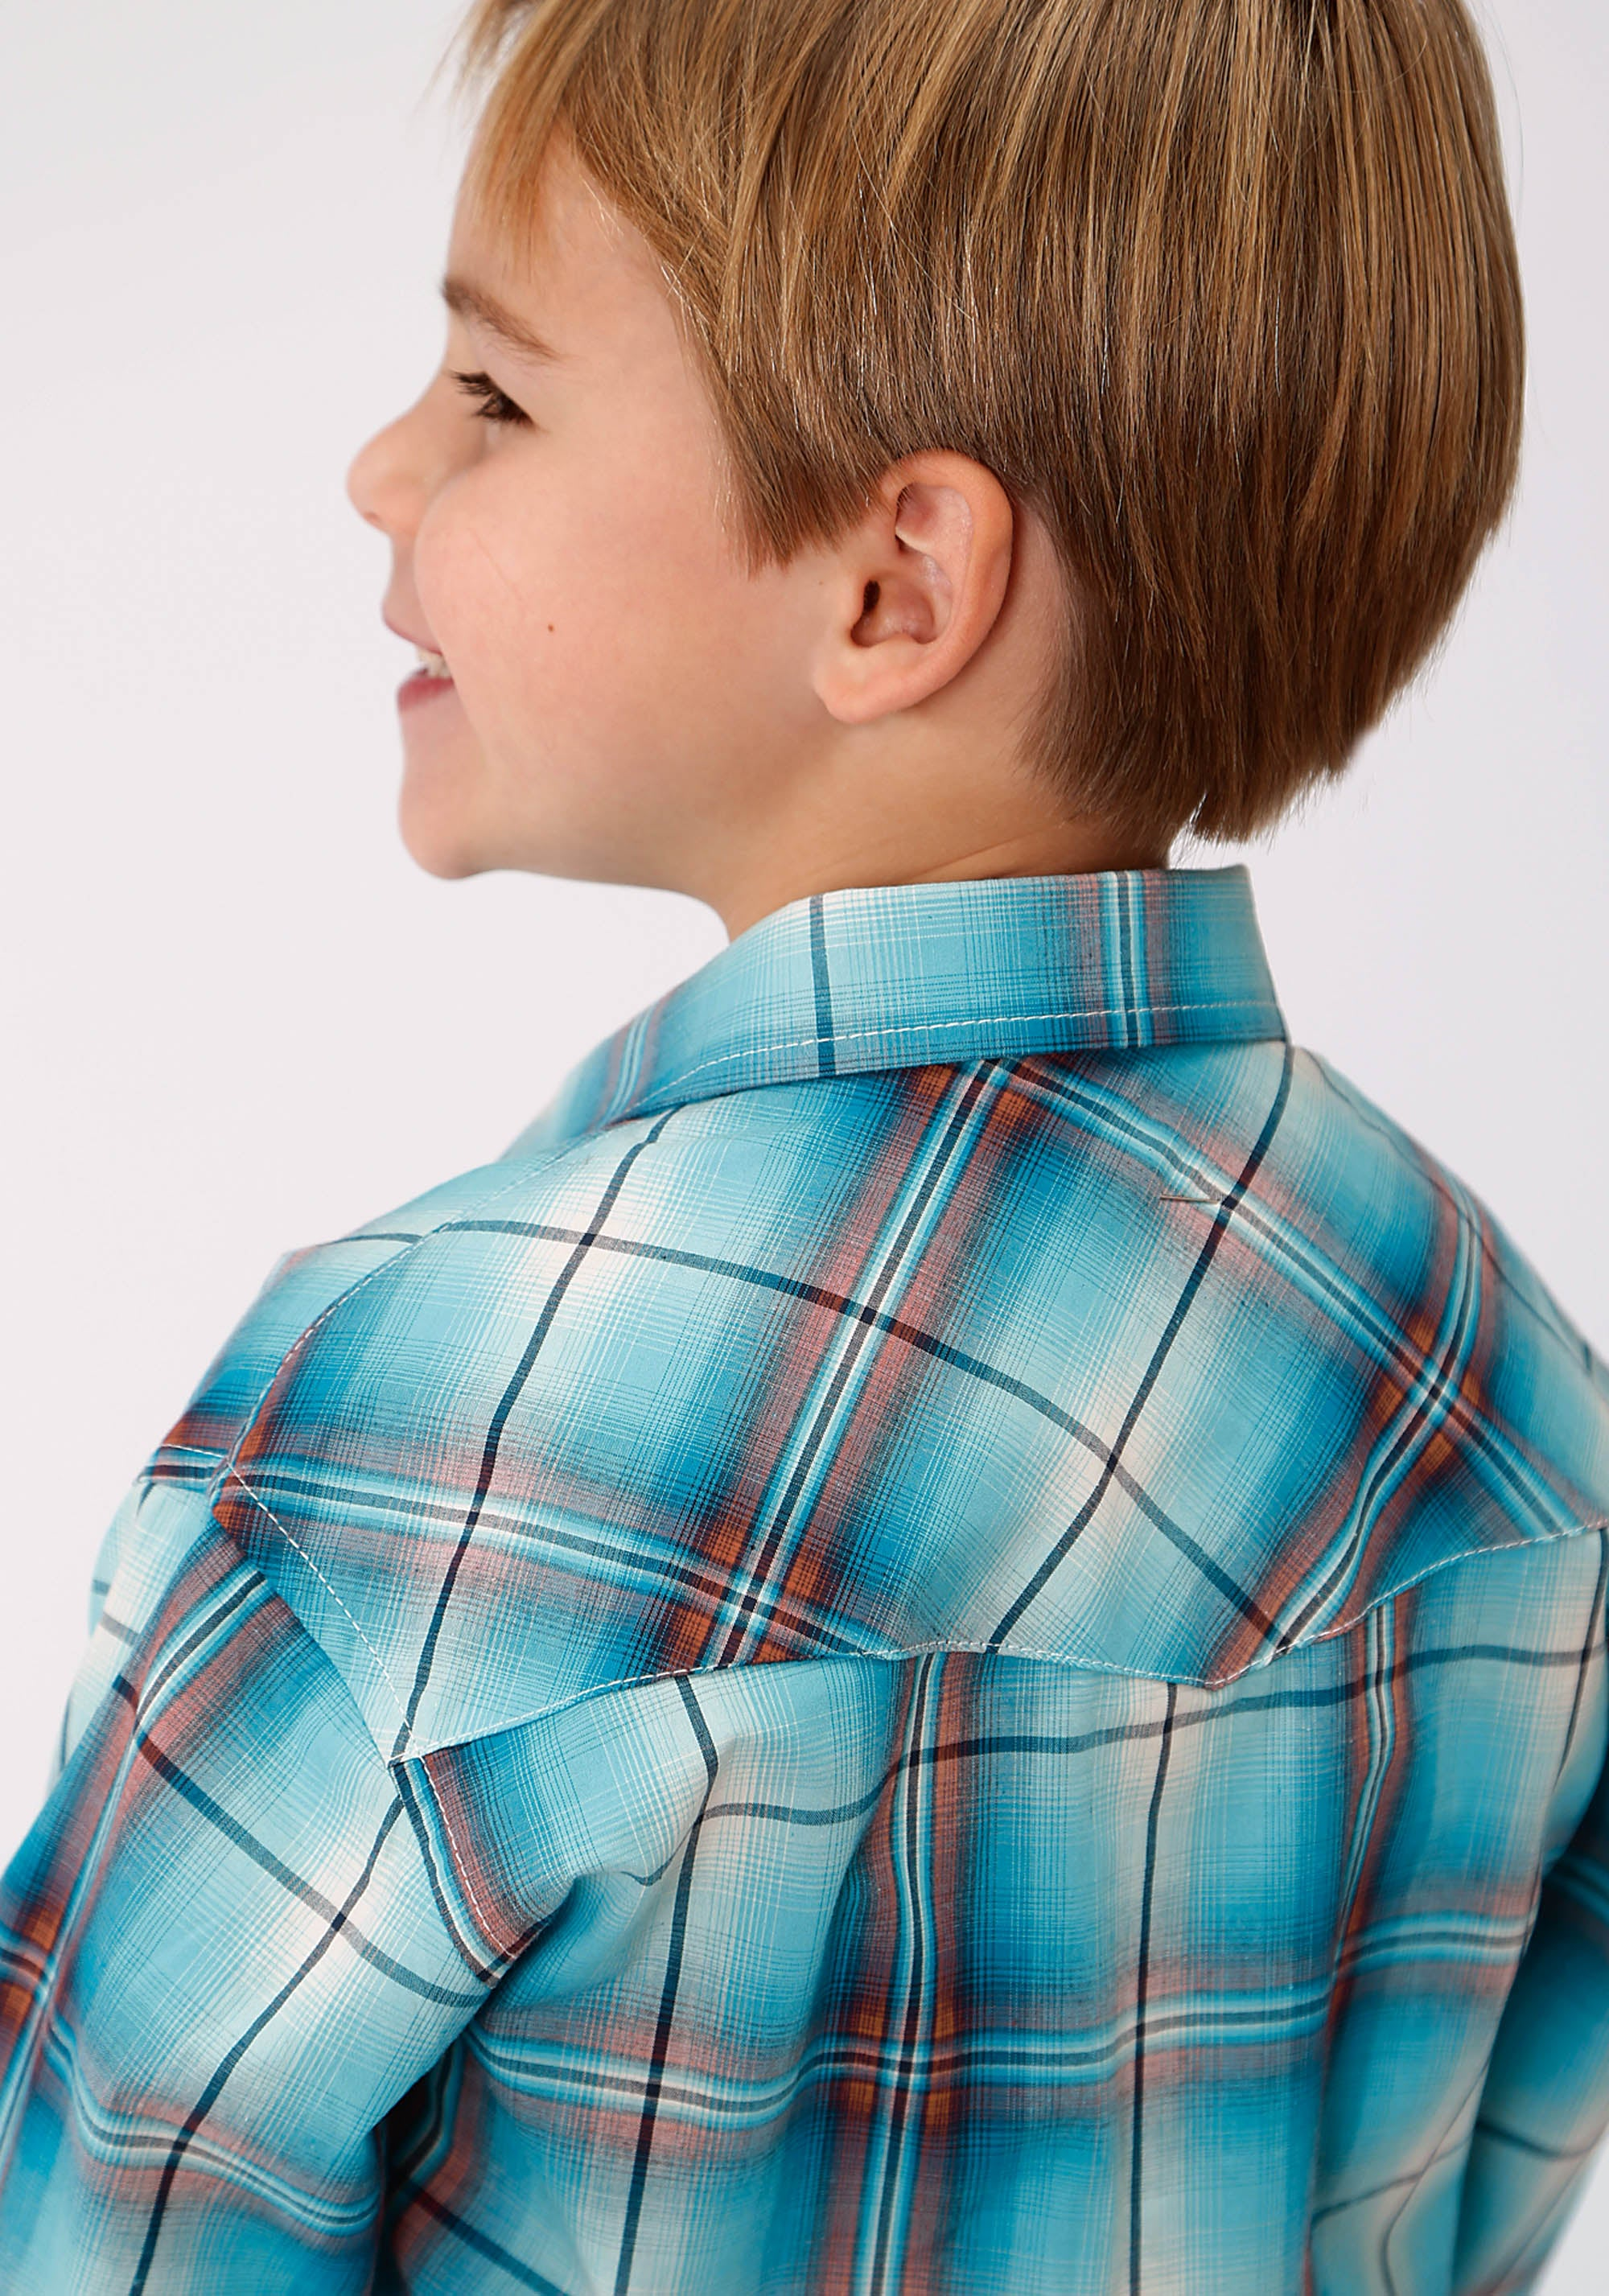 ROPER BOYS BLUE 9613 AUTUMN SUSNSET PLAID BOYS AMARILLO COLLECTION- AUTUMN SUNSET LONG SLEEVE